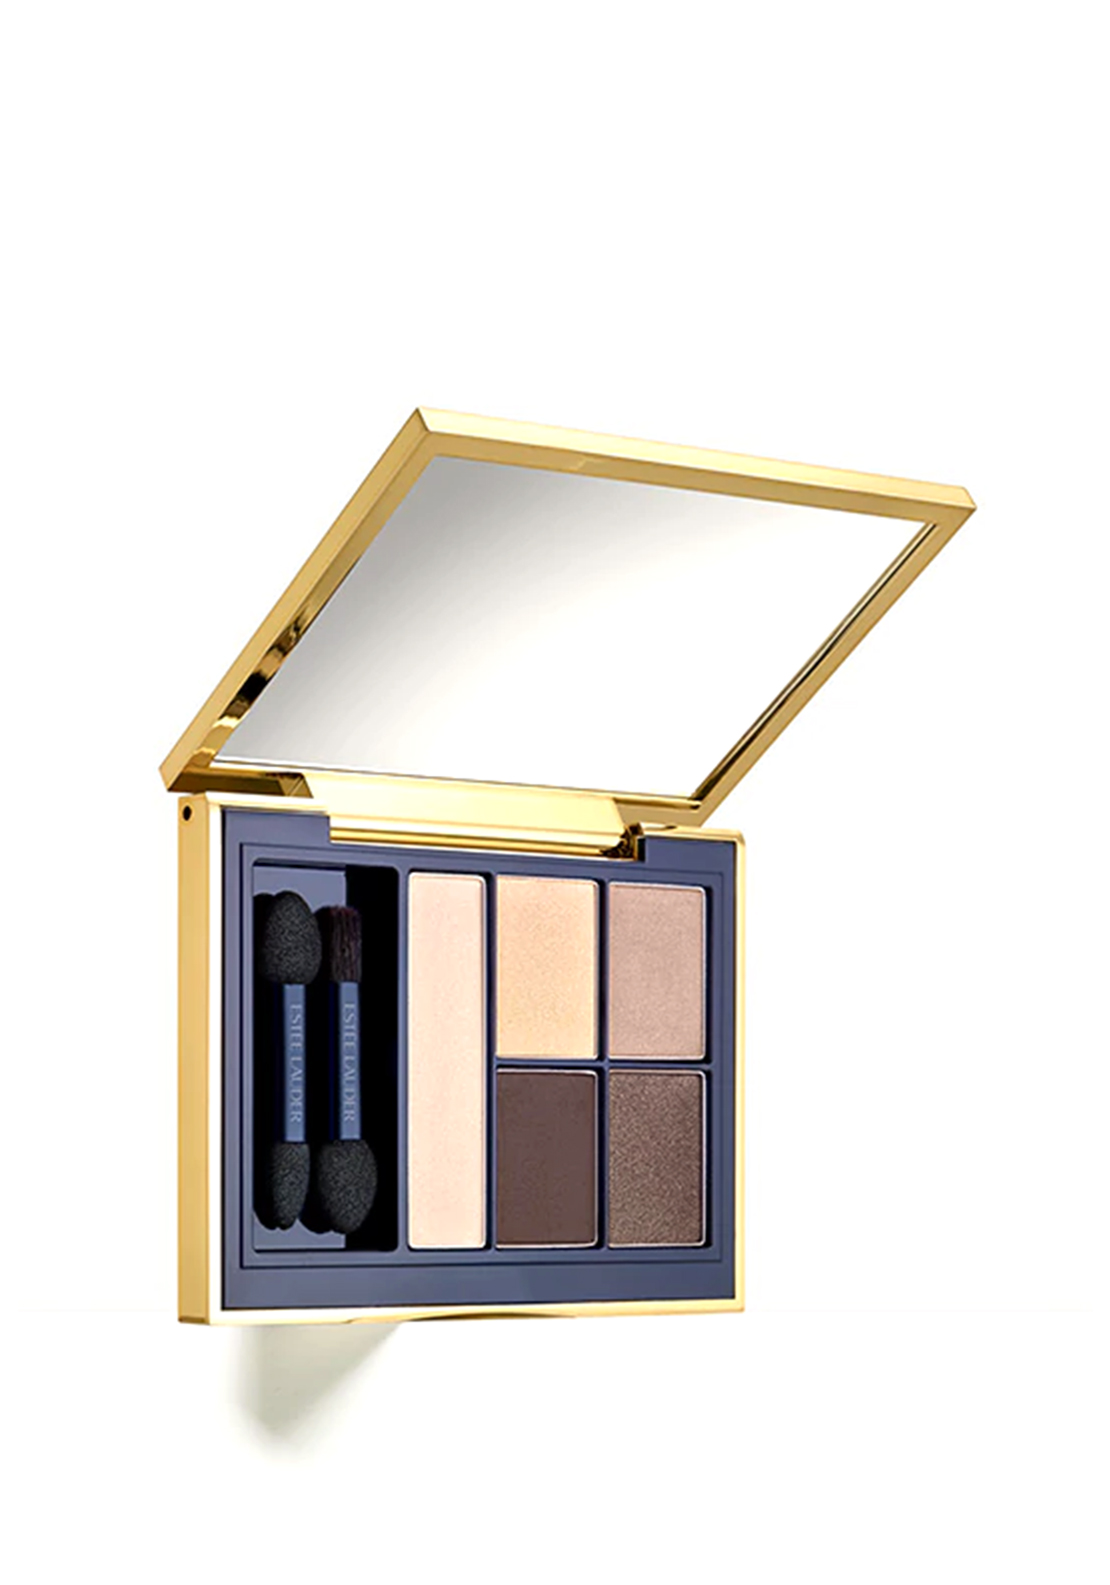 Estee Lauder Pure Colour Envy Eyeshadow Palette, Ivory Powder